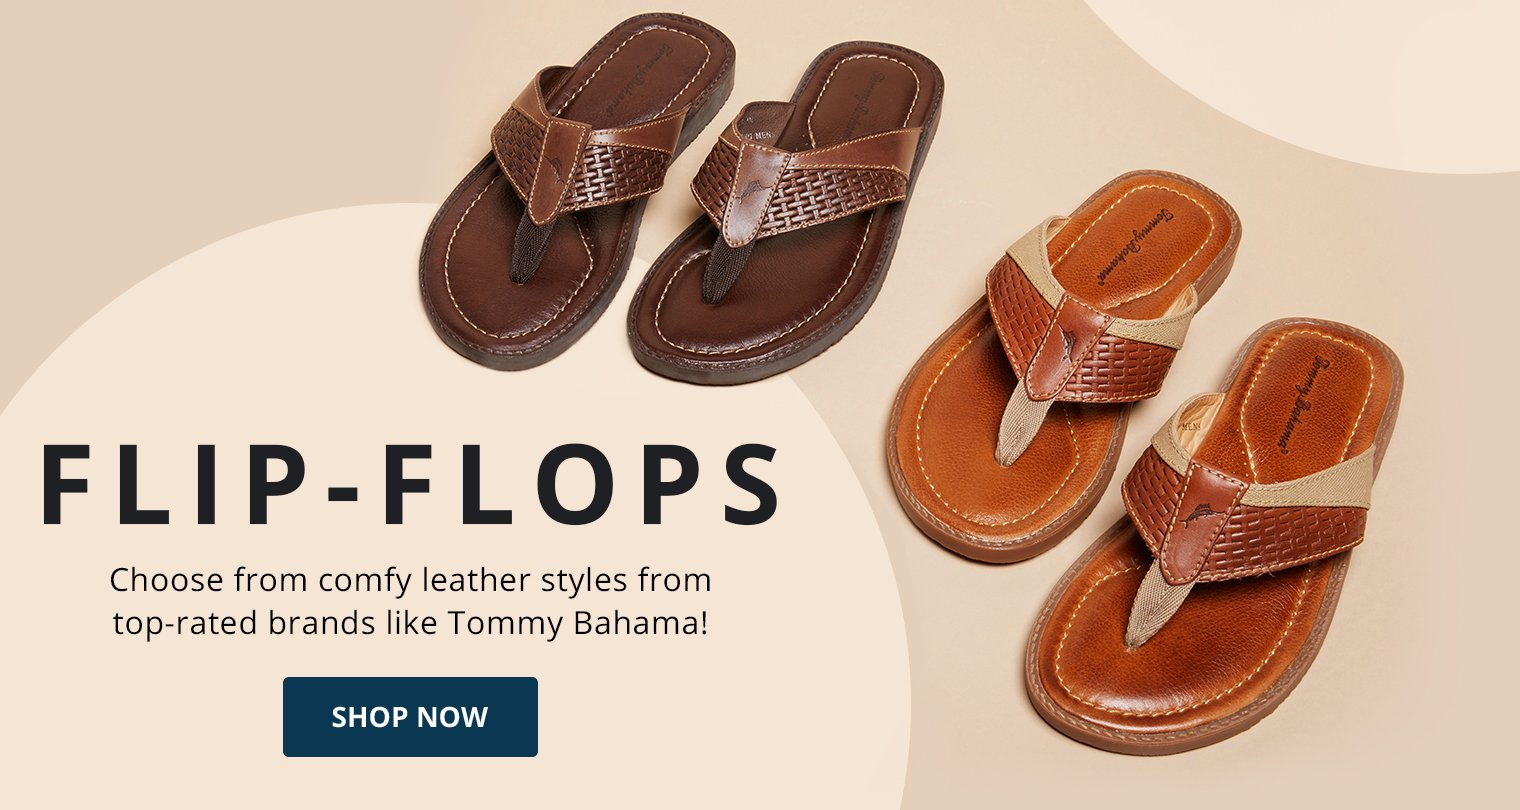 Flip-Flops. Choose from comfy leather styles from top-rated brands like Tommy Bahama!